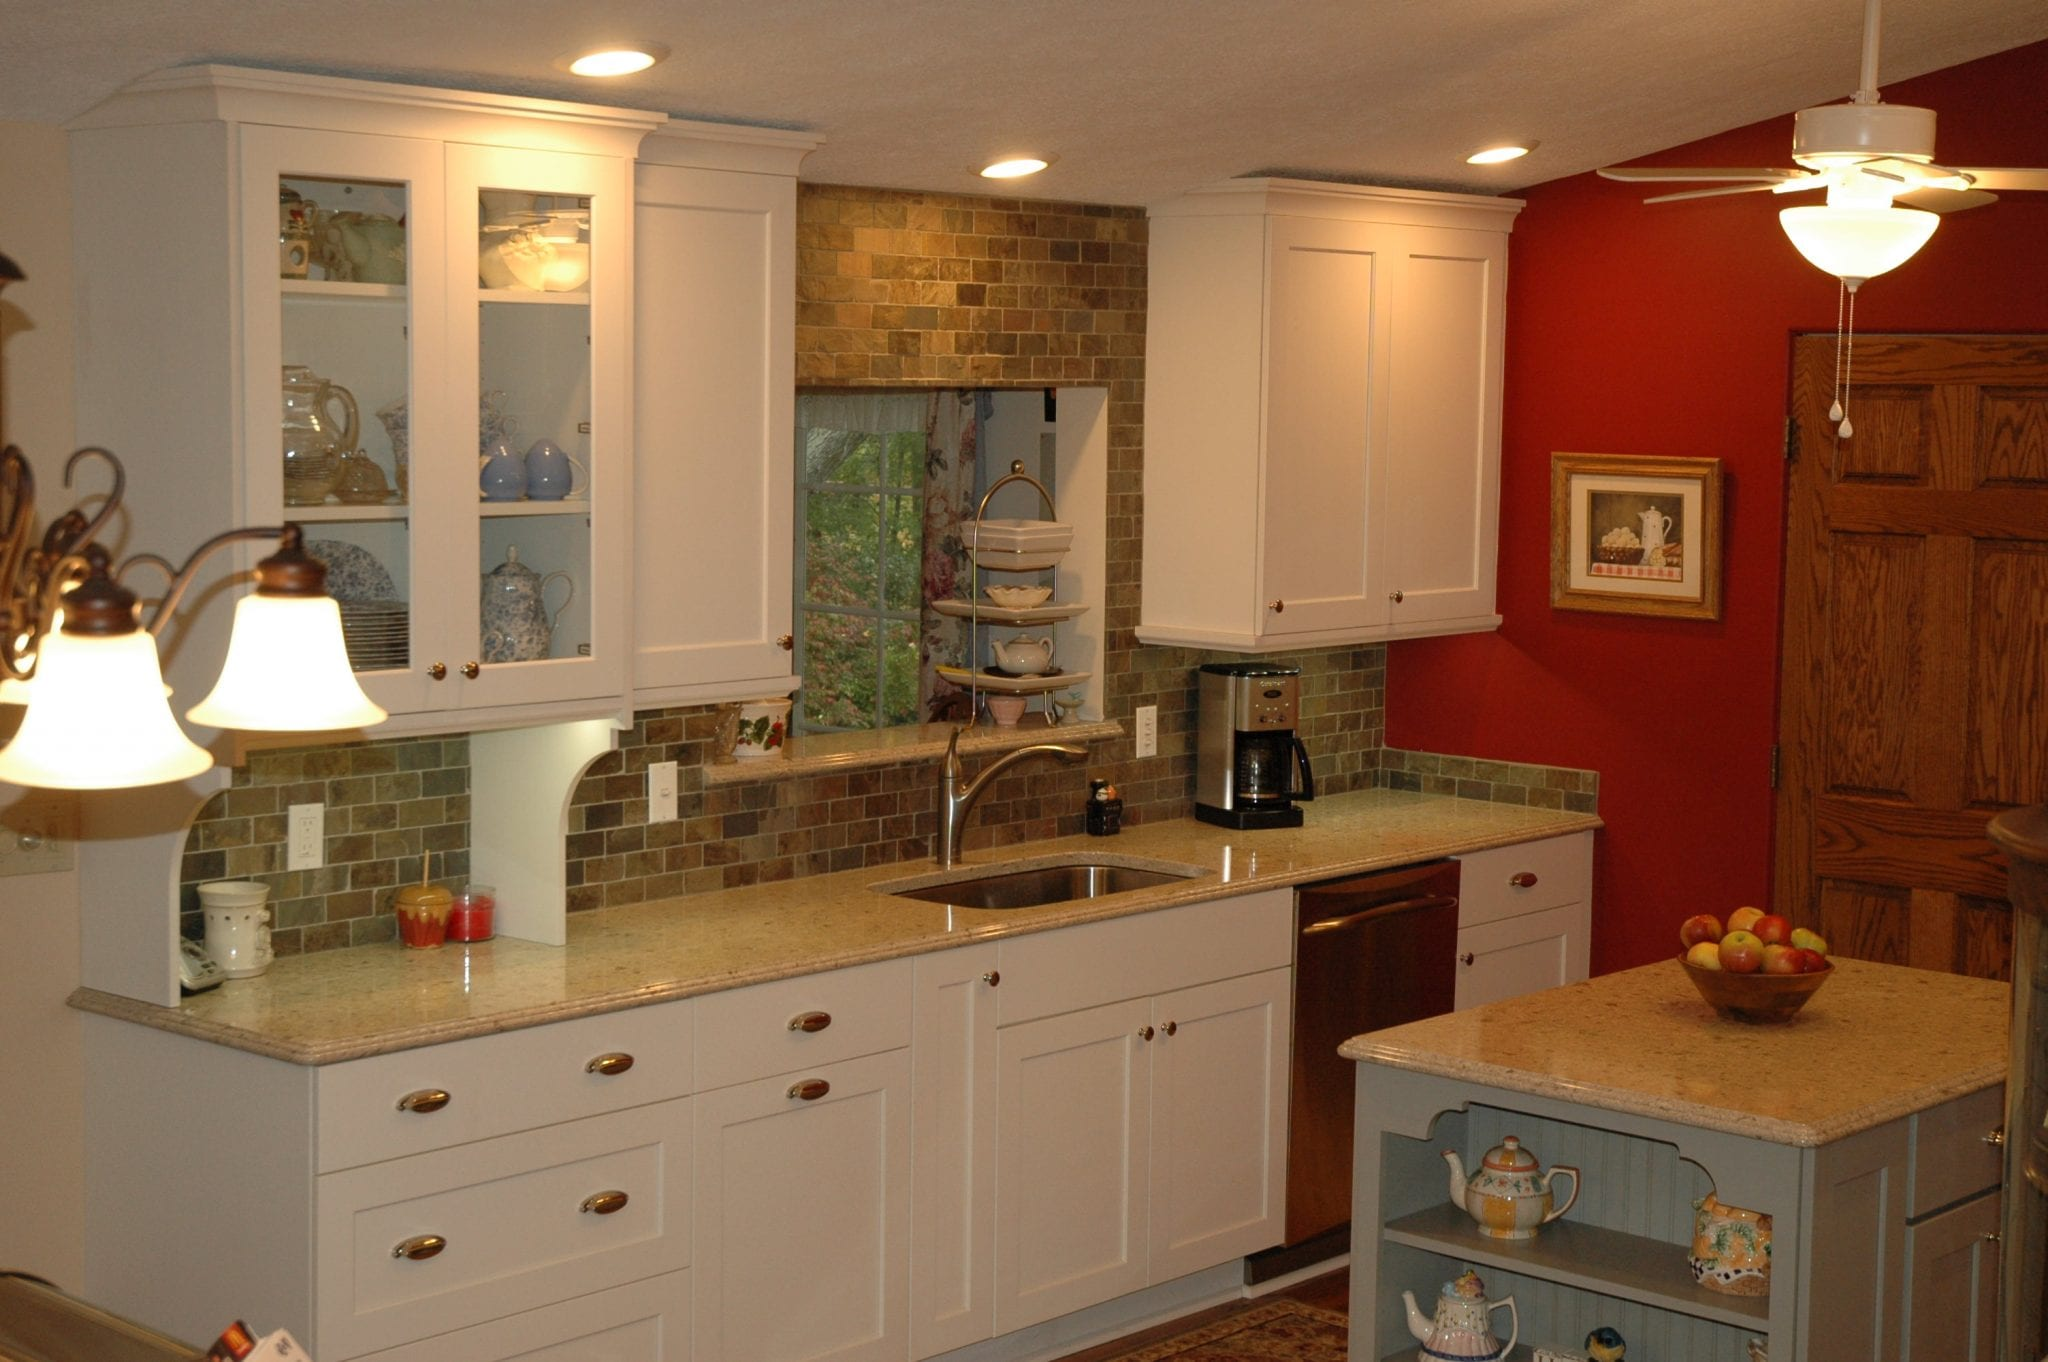 michigan kitchen & bath remodeling | visit our showroom | mcdaniels